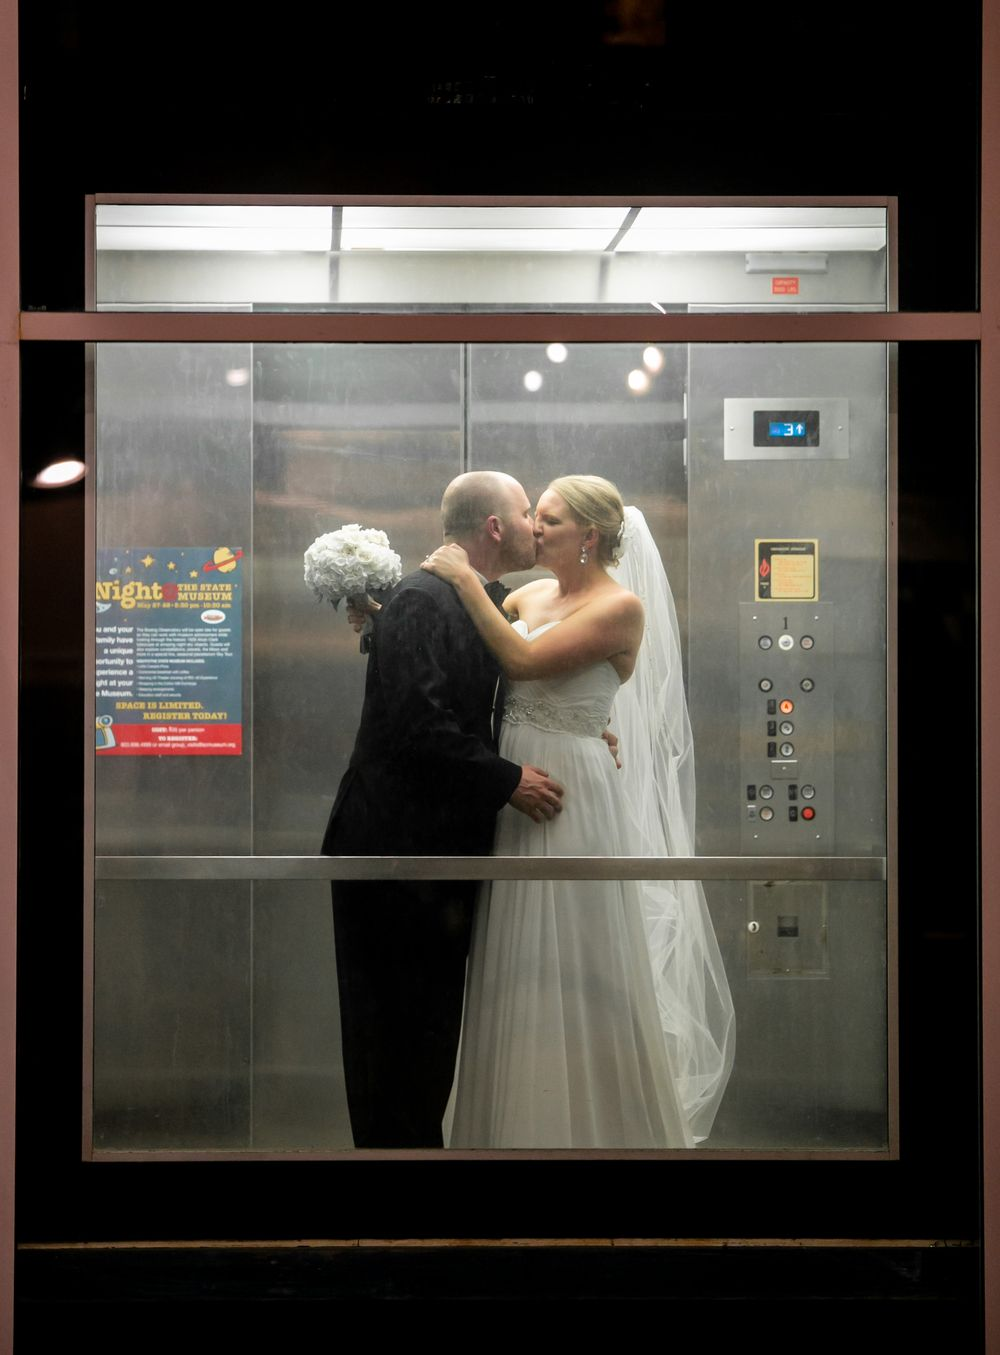 Maggie and Bryan kiss in the elevator following their wedding at the SC State Museum in Columbia, SC.